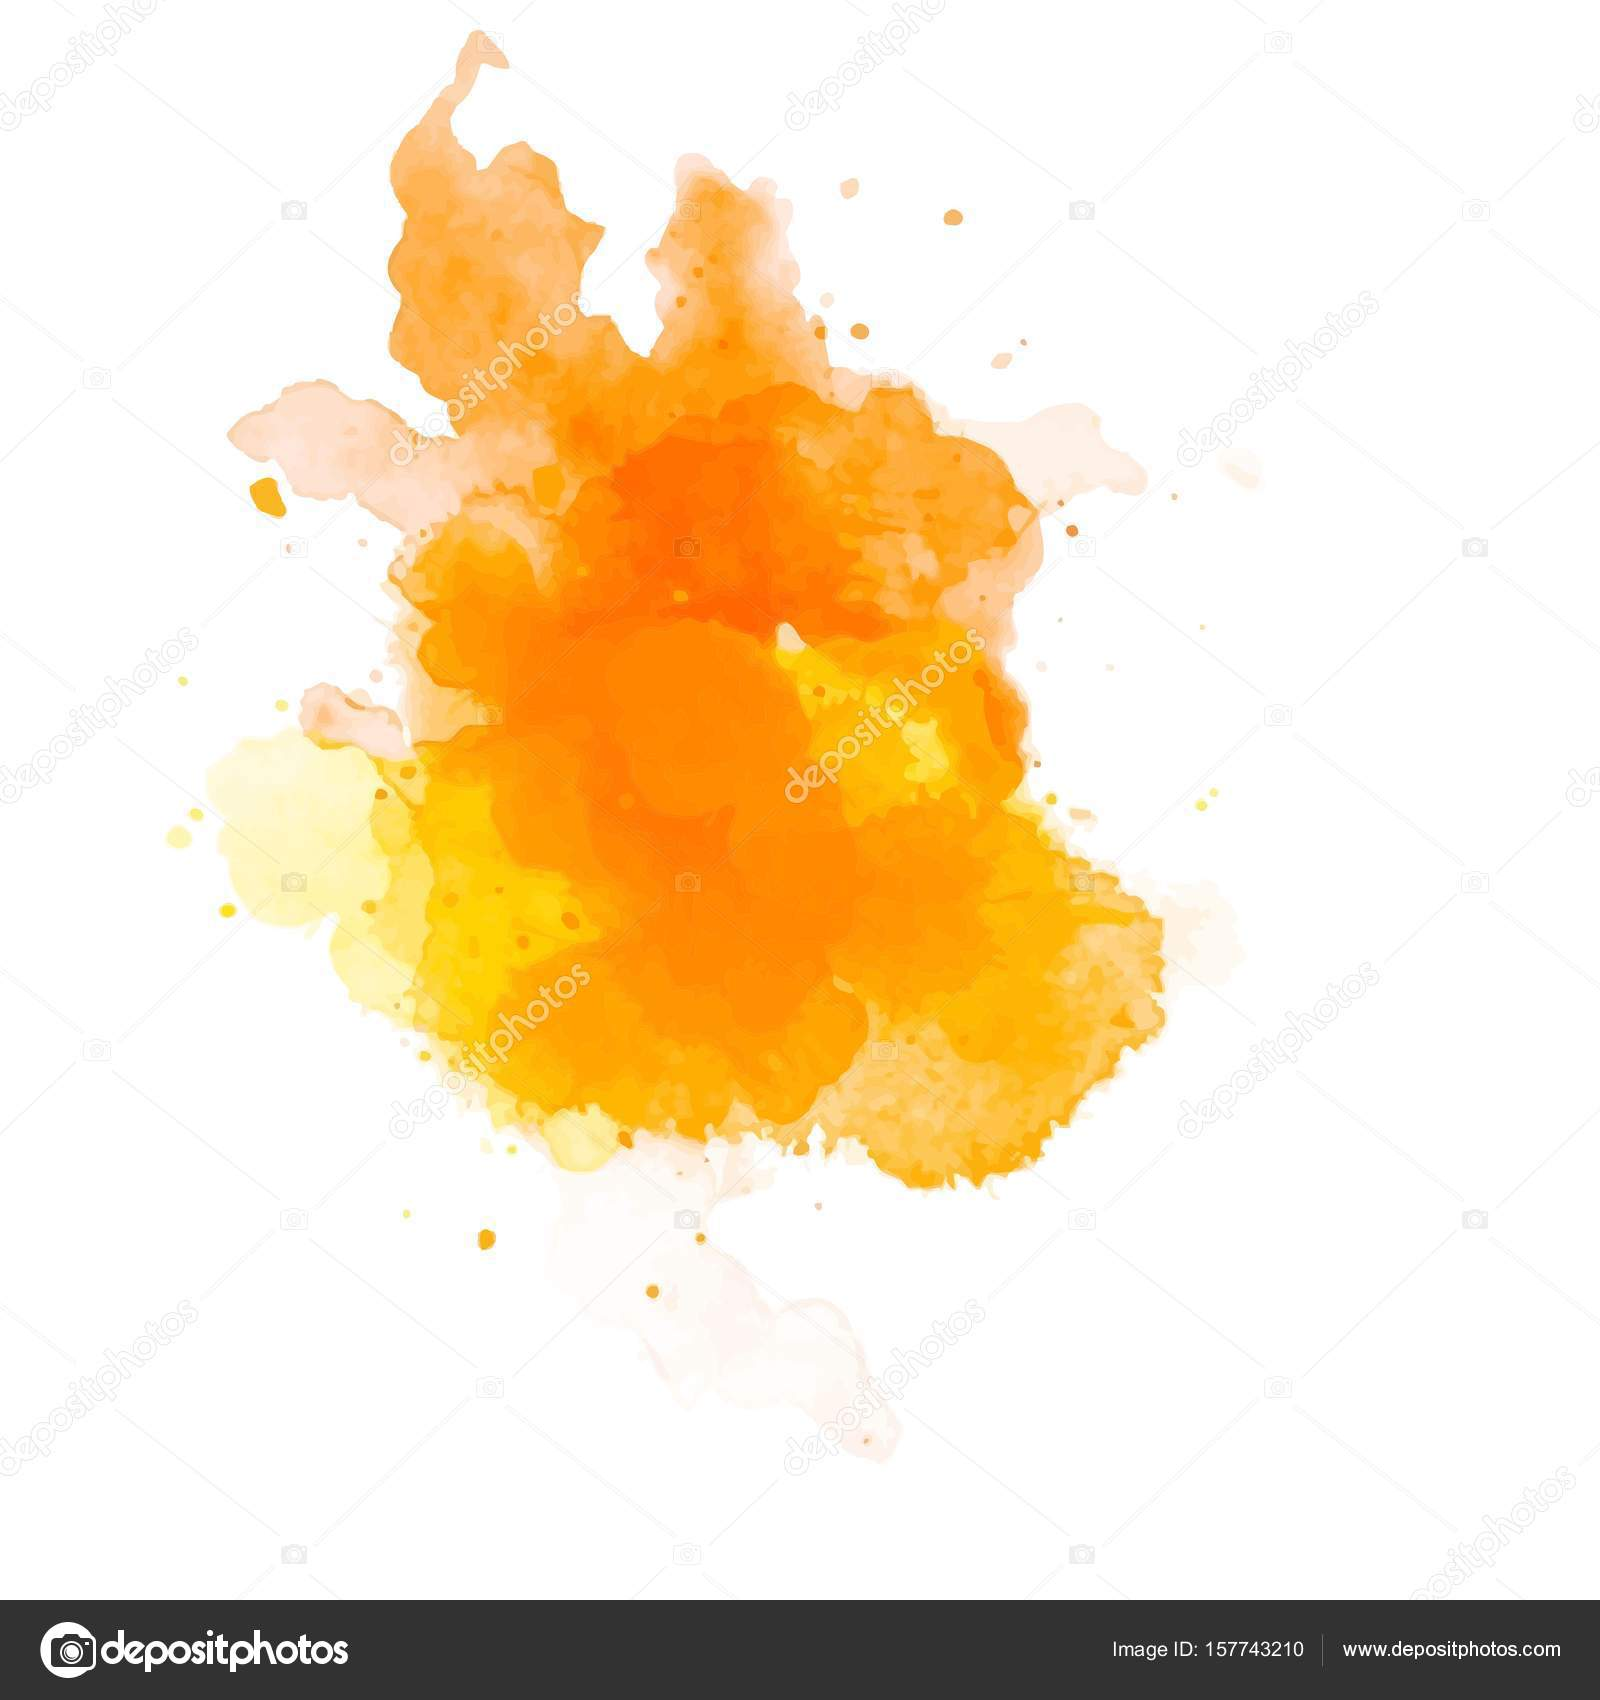 abstract art orange background digital painting color texture